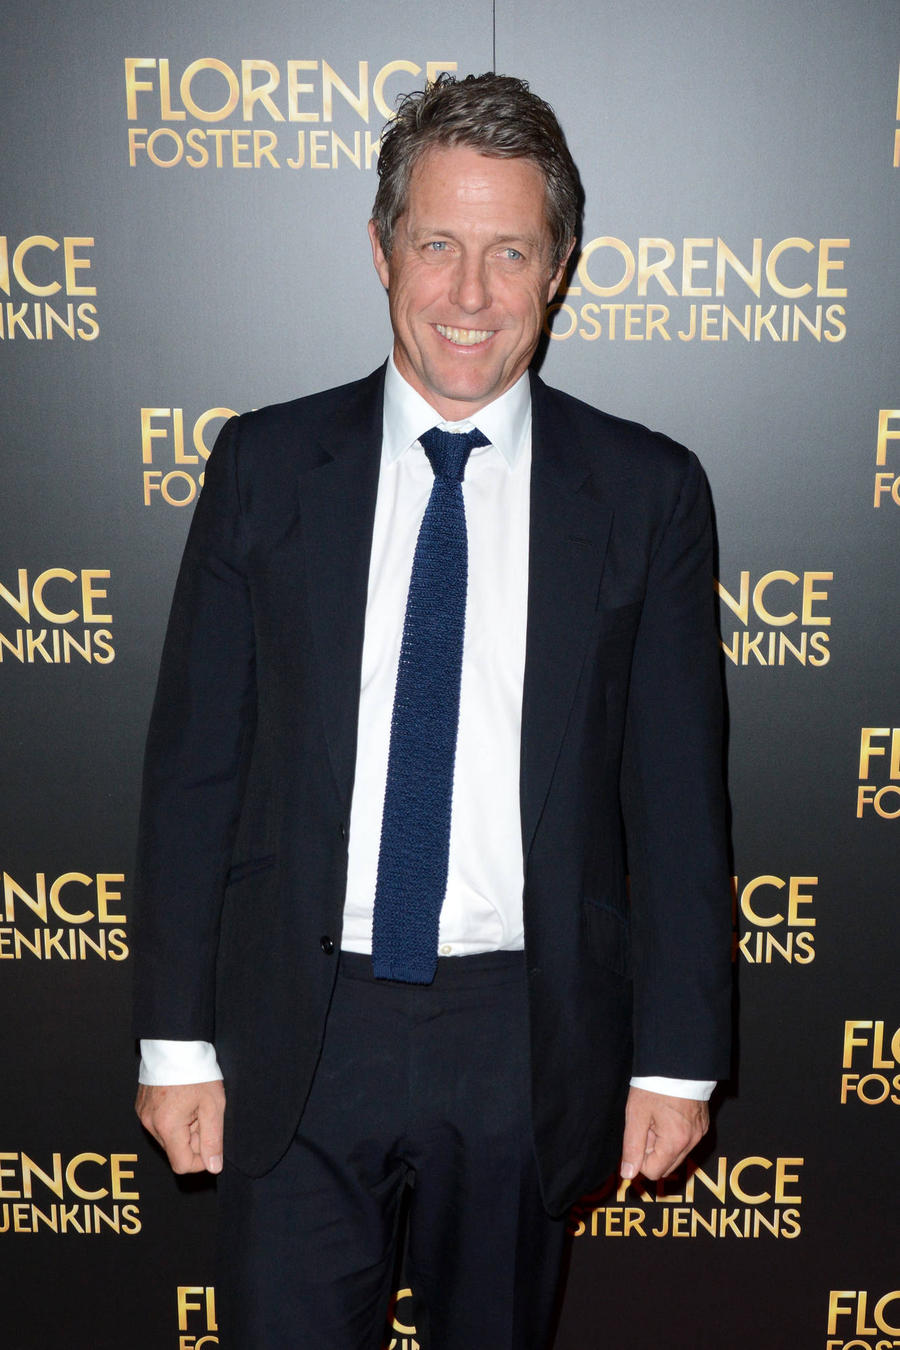 Hugh Grant Fails To Recognise Co-star Renee Zellweger